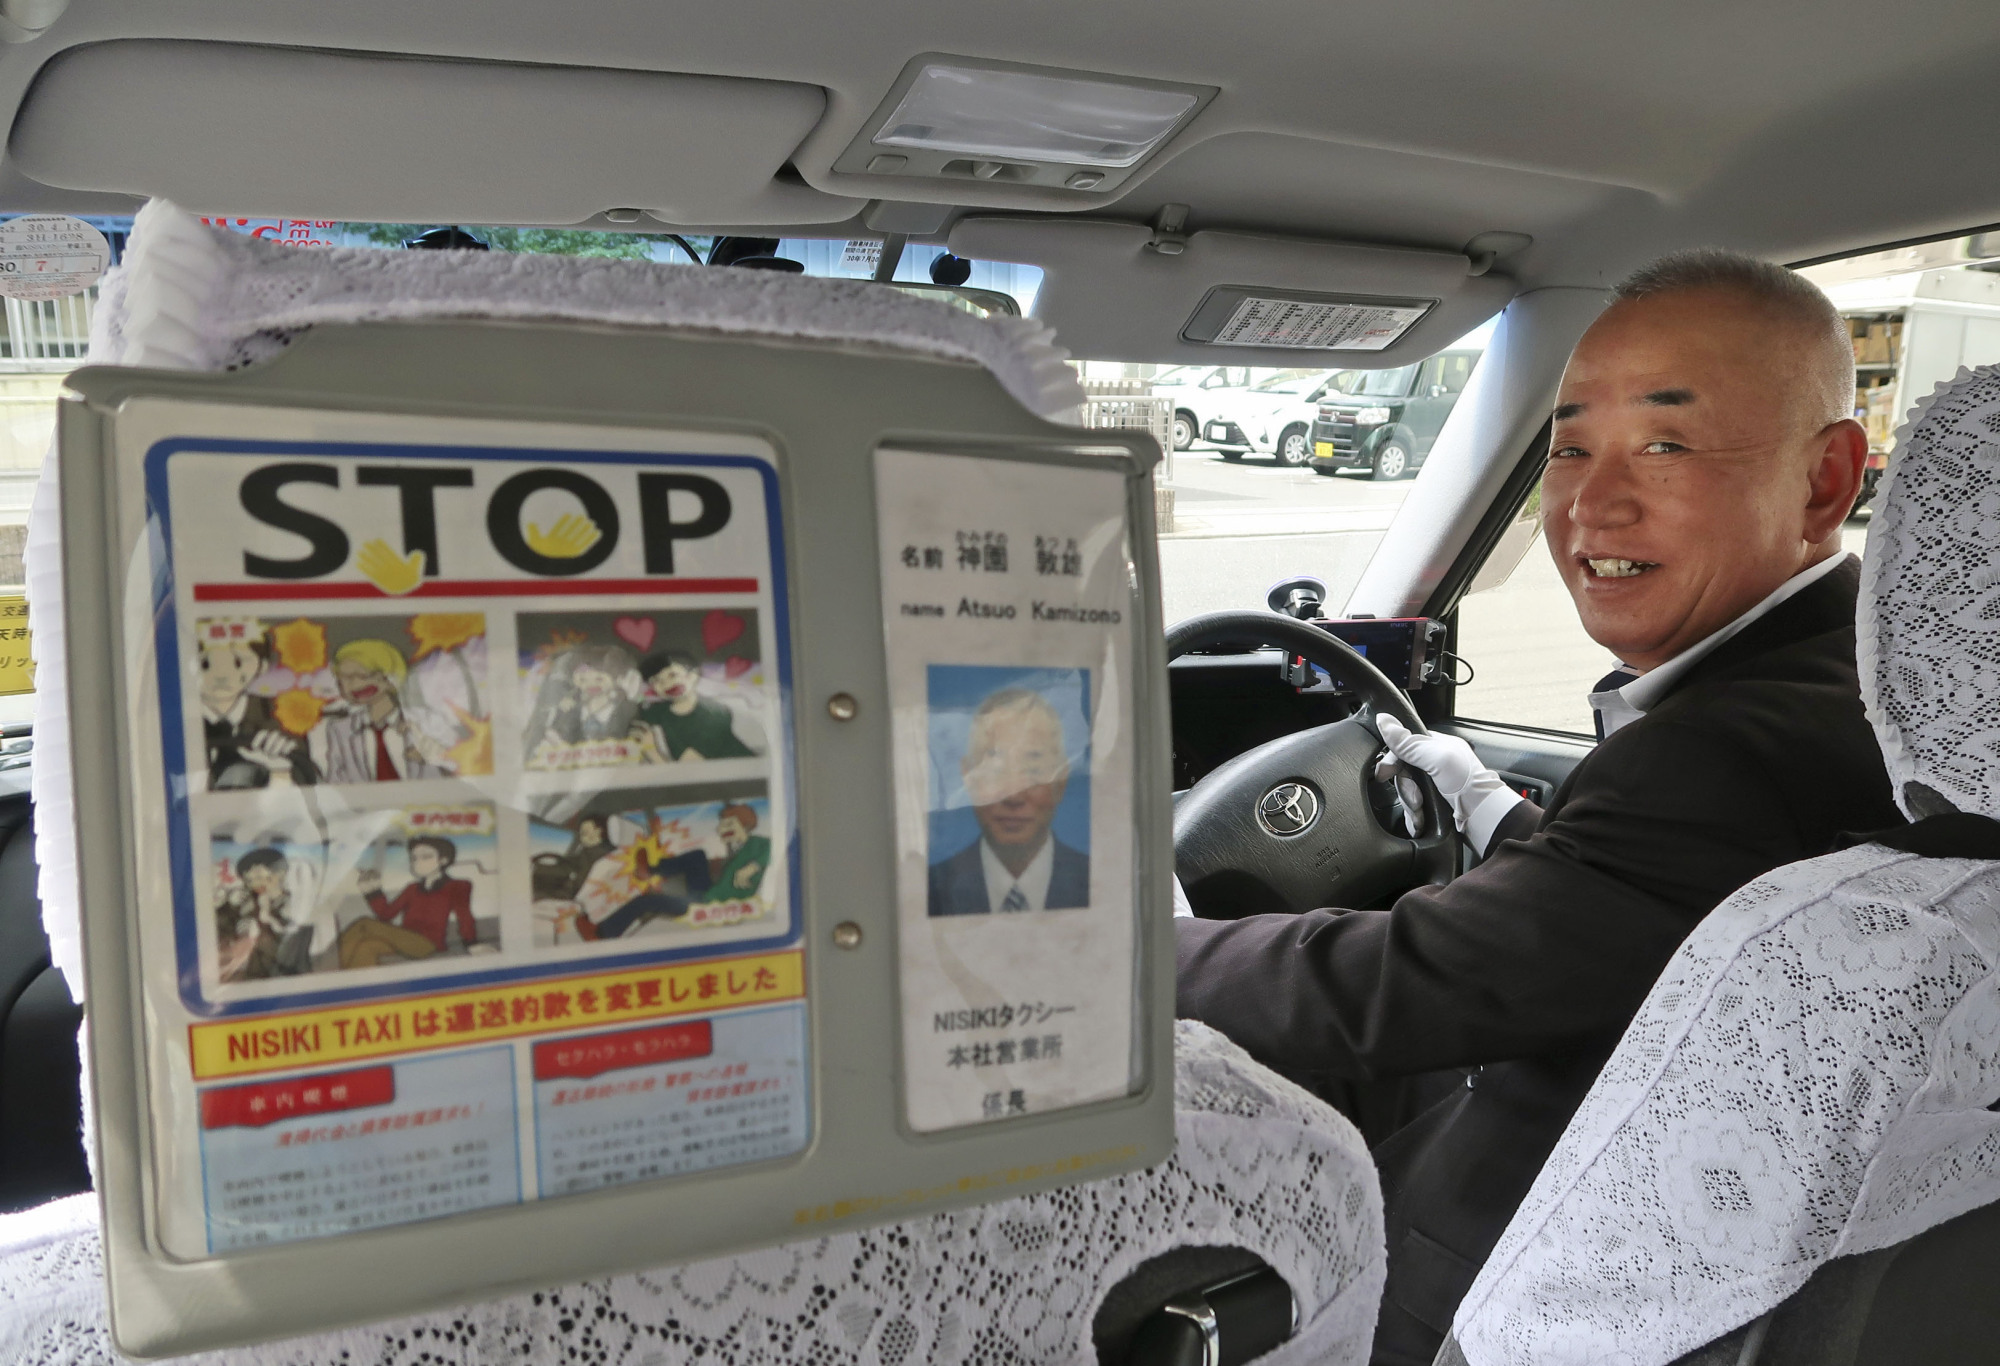 A notice in the cab driven by Atsuo Kamizono, of Hiroshima-based Nisiki Taxi, explains the company's guidelines that allow drivers to refuse transport to unruly passengers. | KYODO